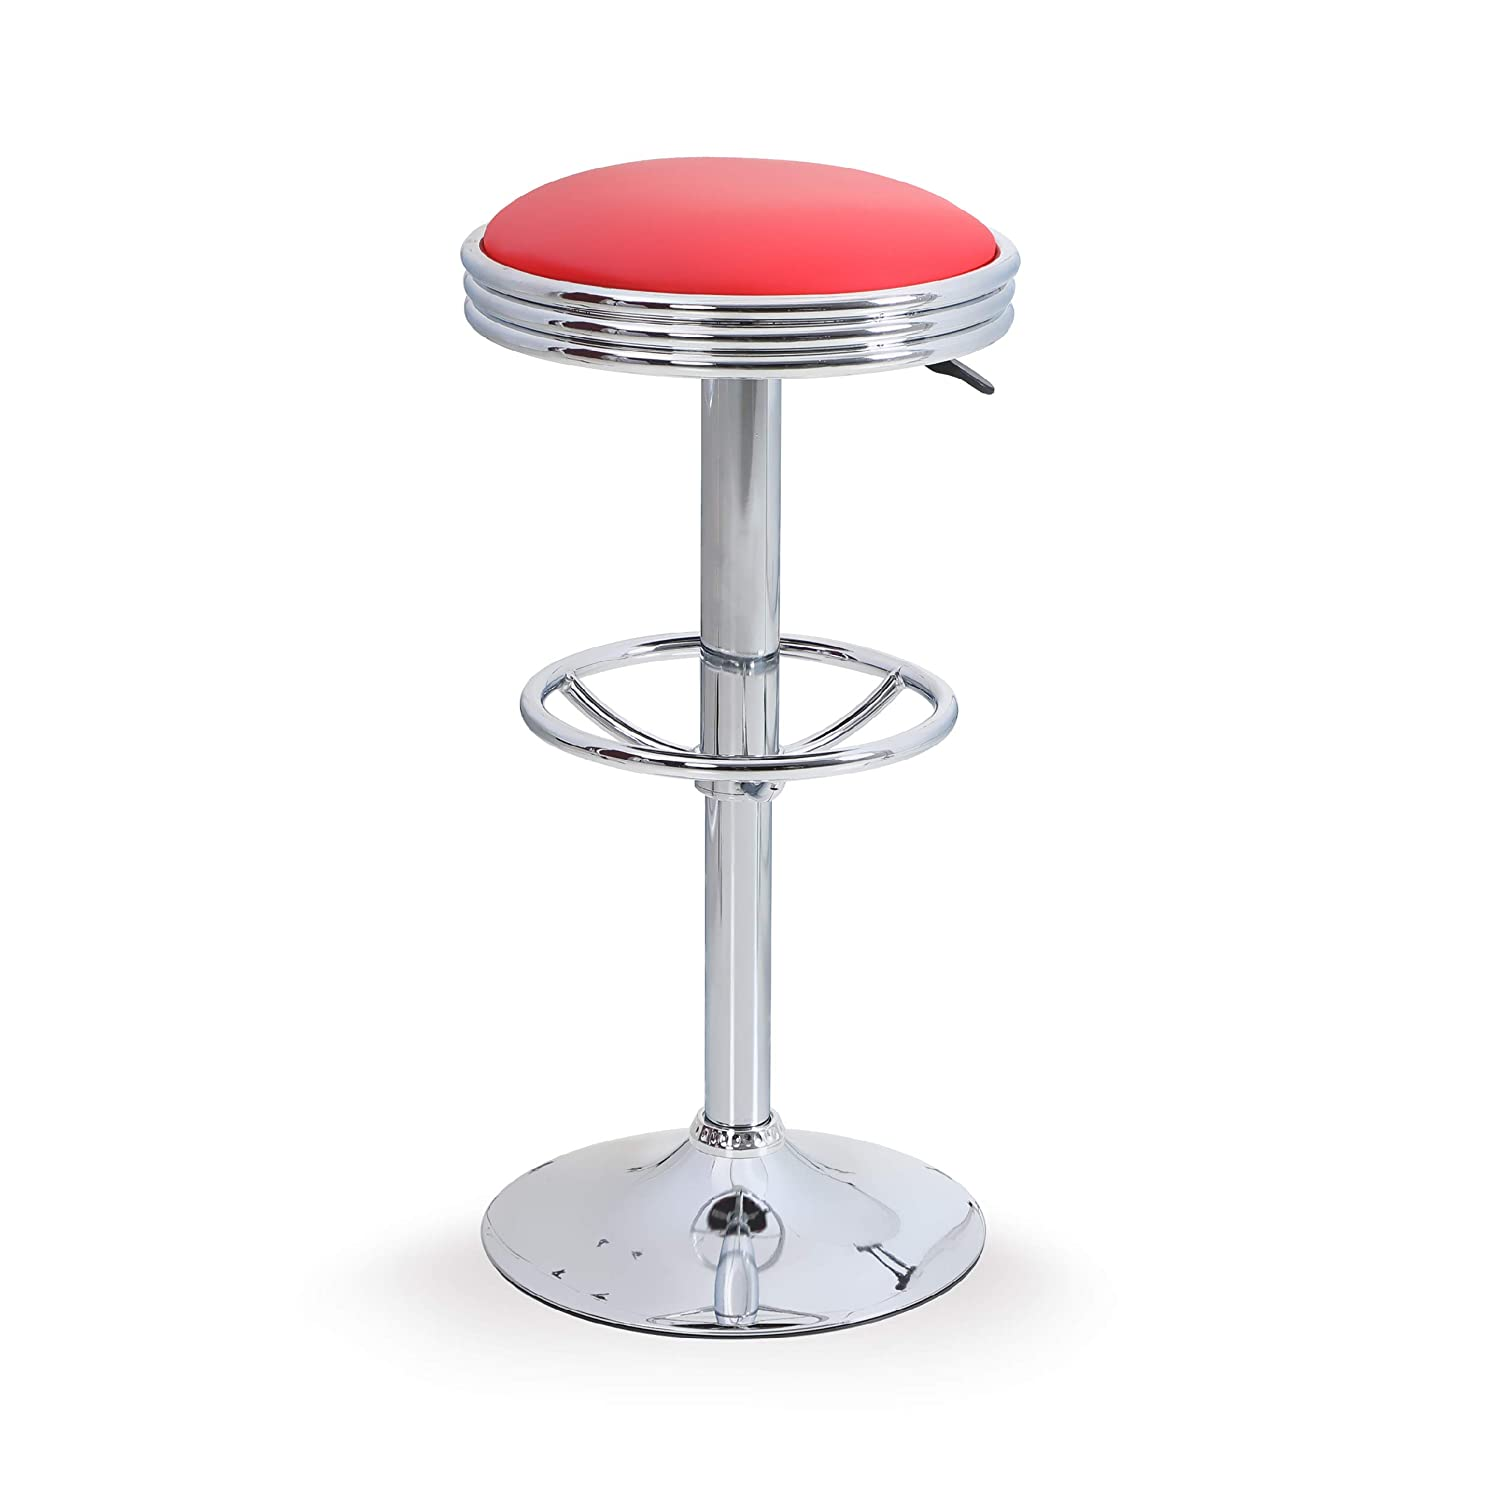 Khaki, 1 pc ALPHAHOME Swivel Bar Stool Counter Height Round PU Leather Adjustable Chair Pub Stool with Chrome Footrest